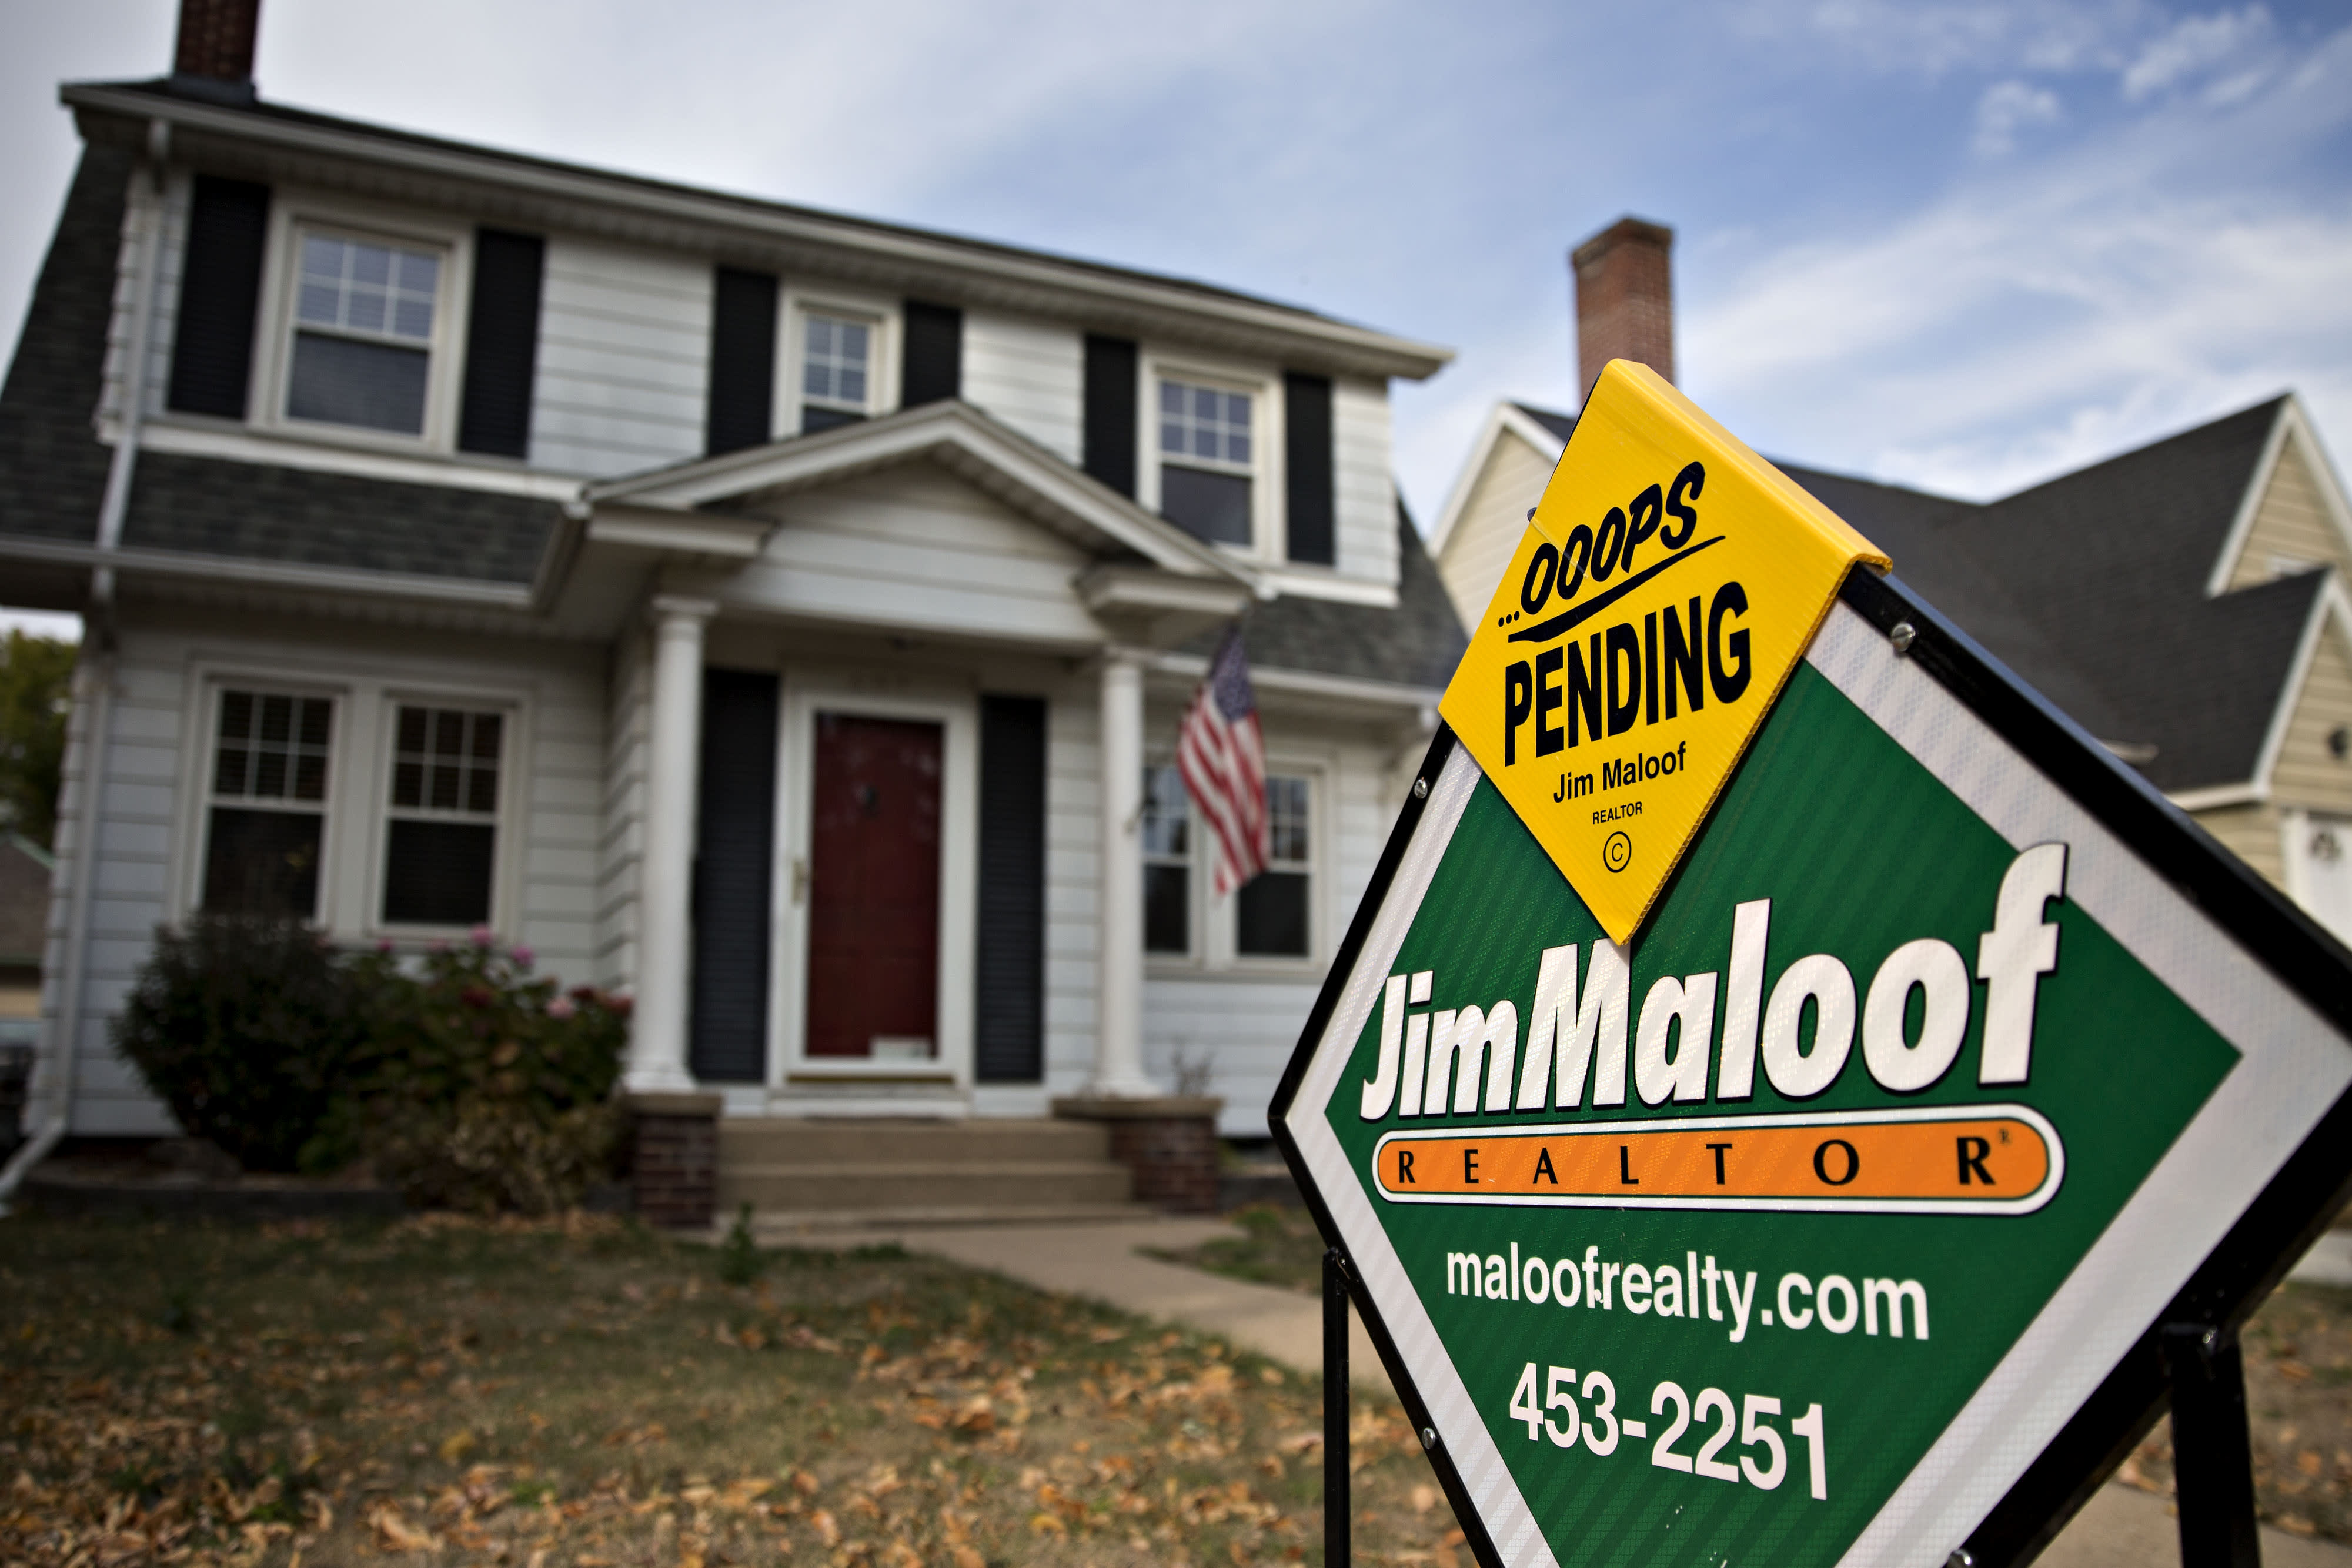 Pending home sales spike a record 44.3% in May, as homebuyers rush back into the market